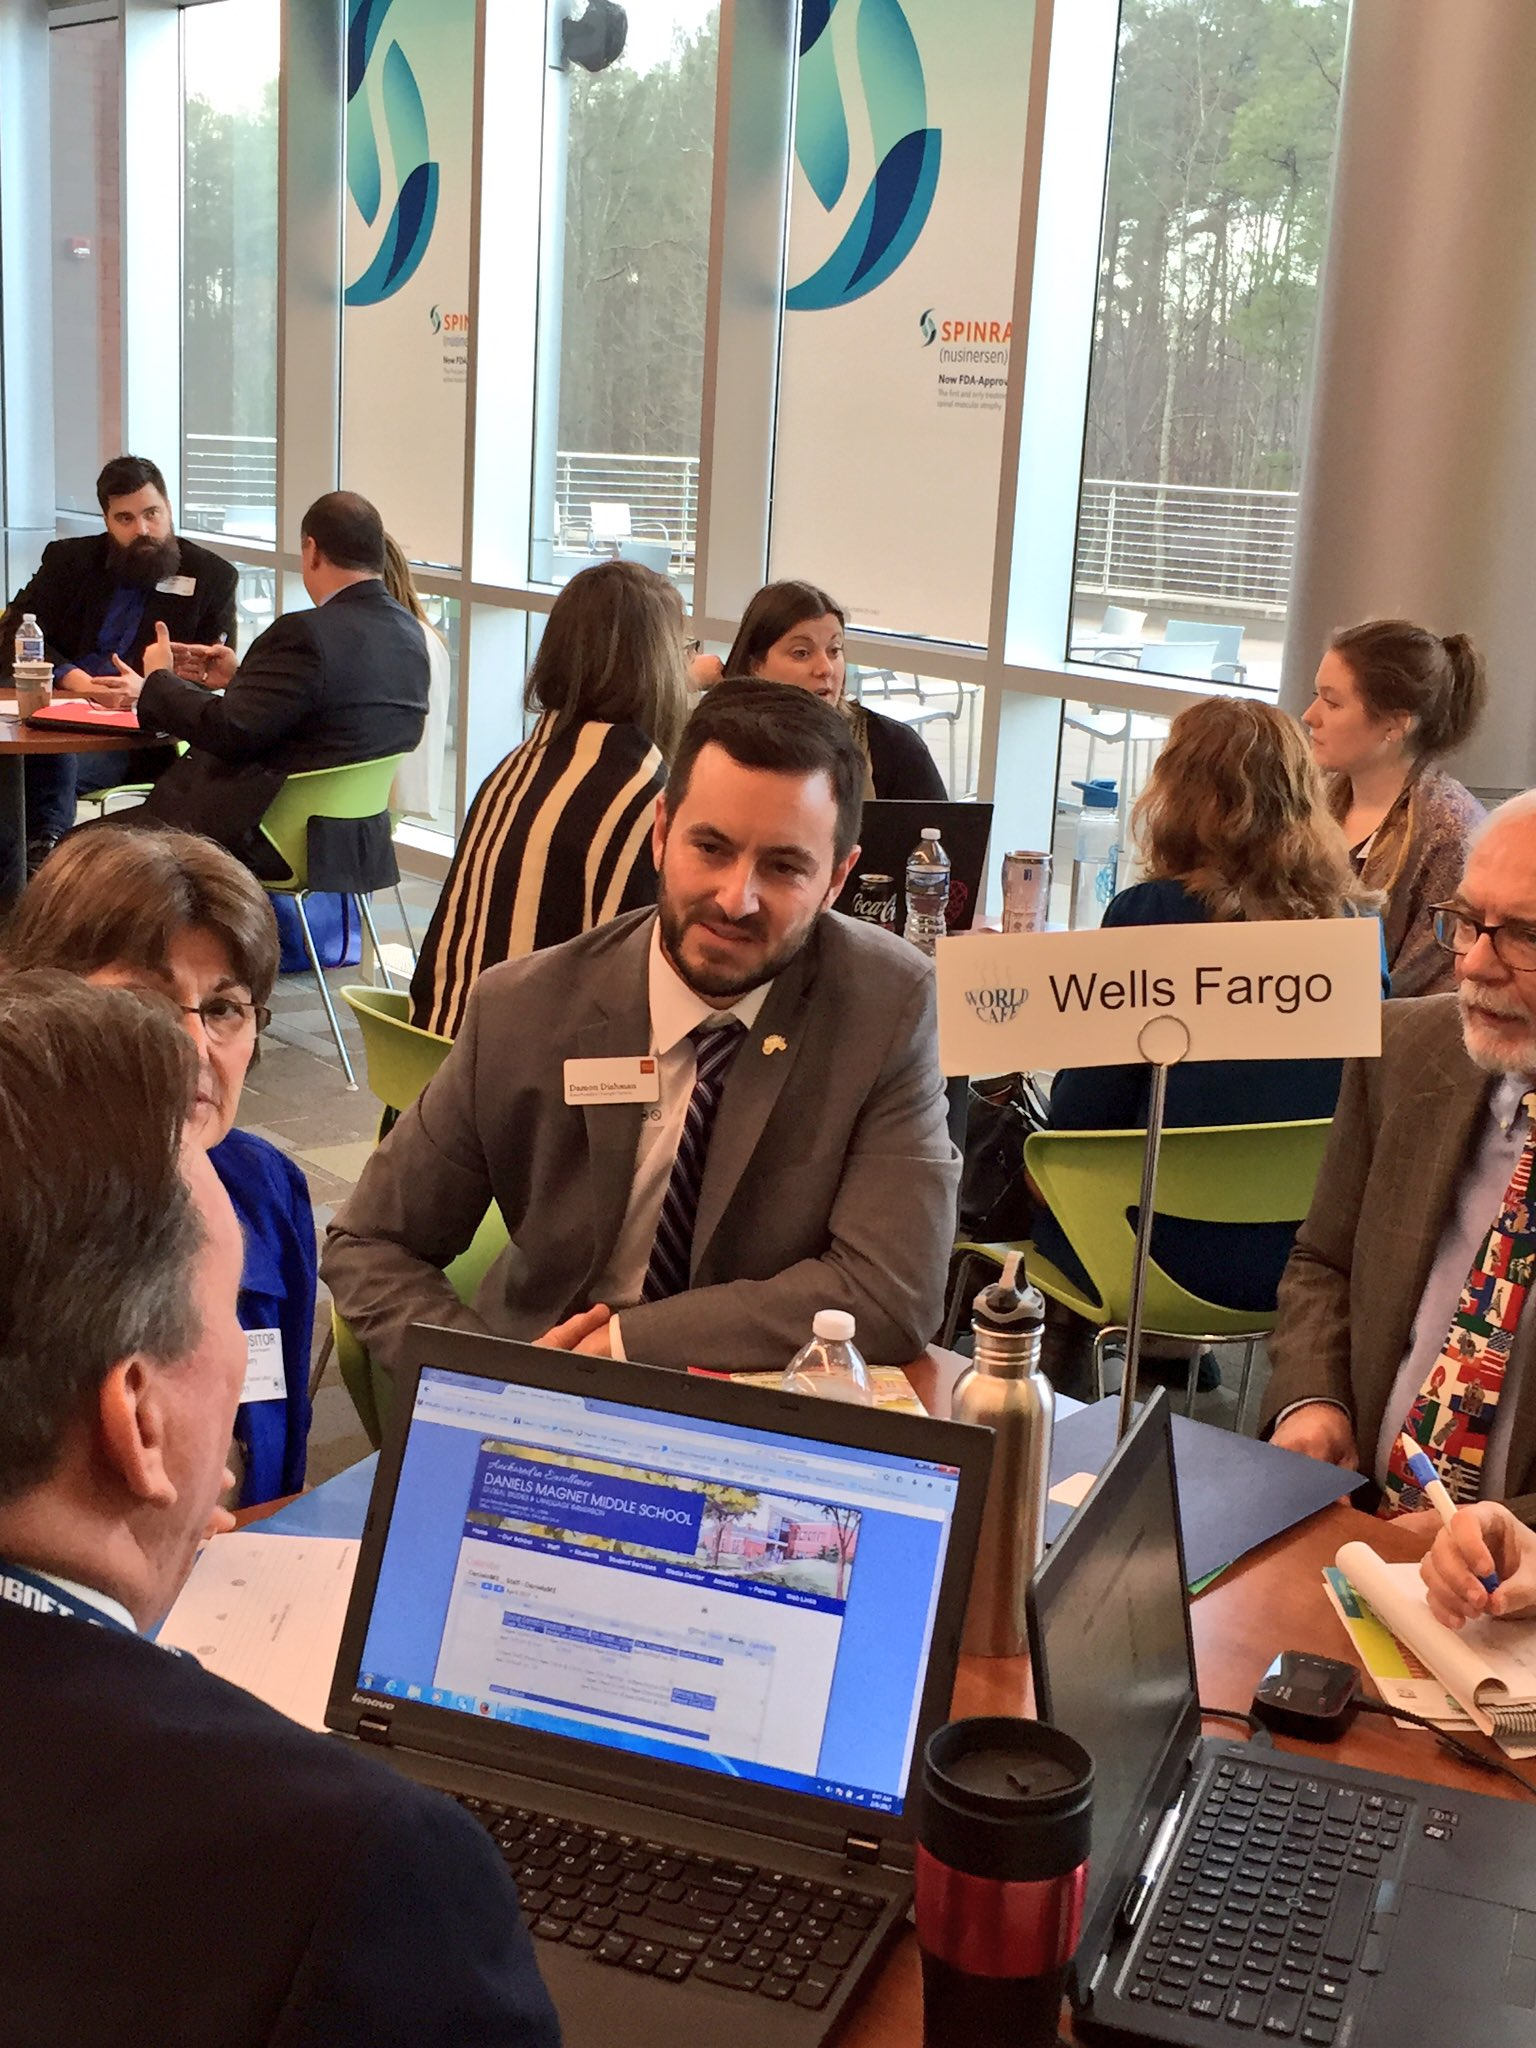 Event sponsor @WellsFargo and @HilburnAcademy educators collaborating on #PBL for Wake County students. #WakeEdWorldCafe https://t.co/7pllREF0SM